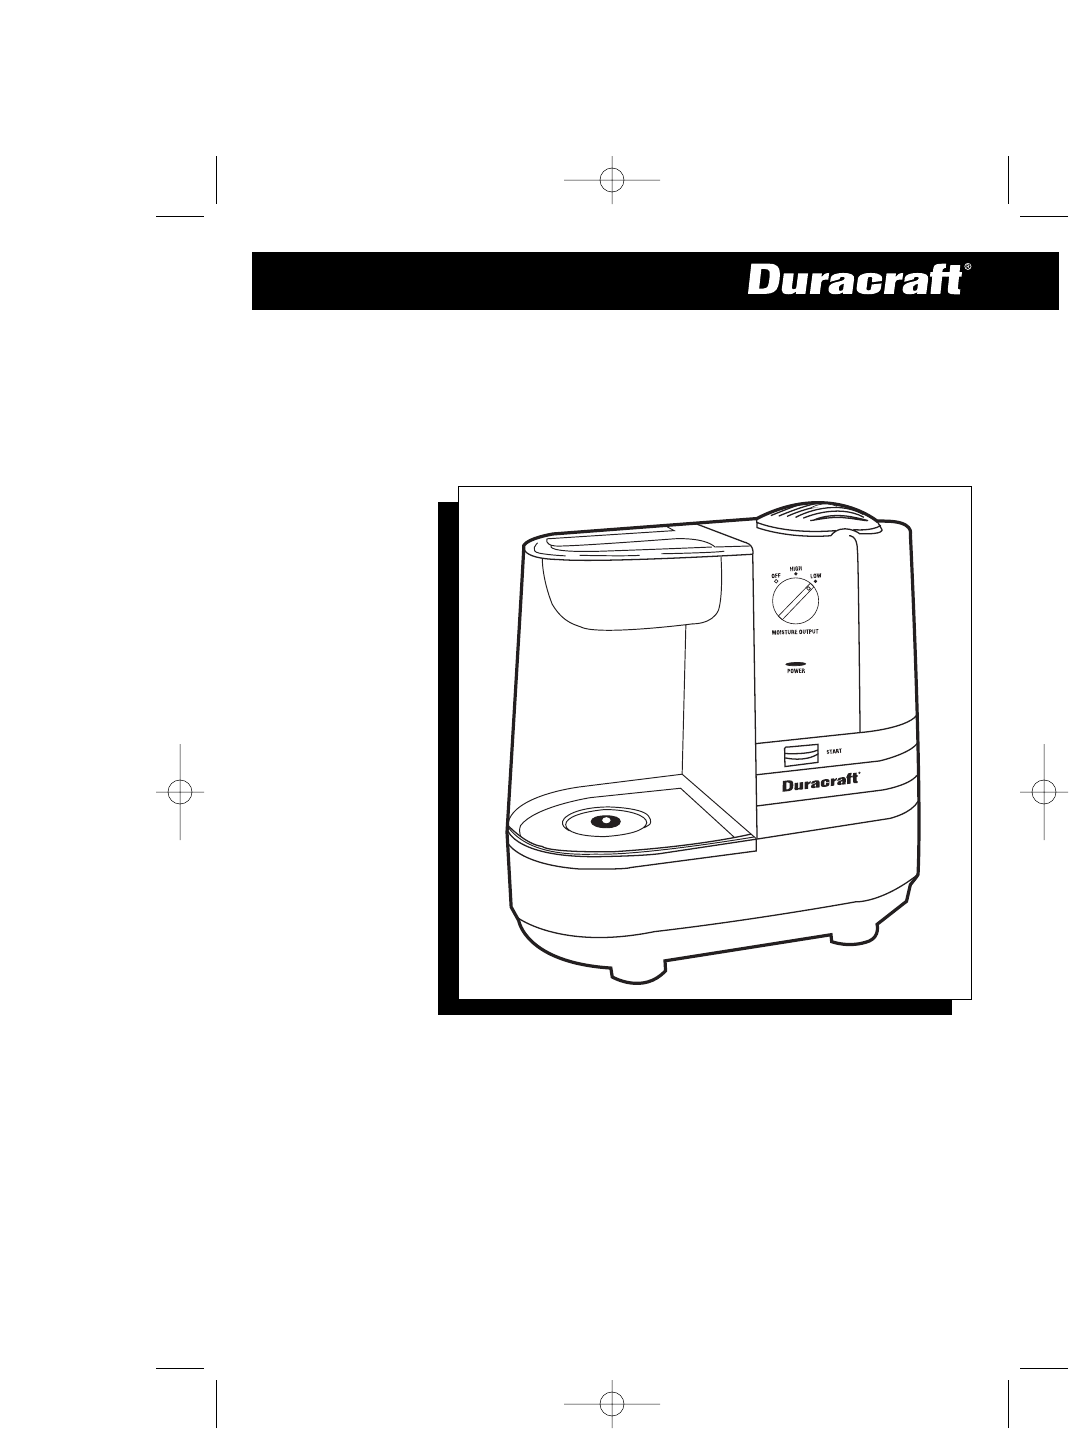 WARM MOISTURE HUMIDIFIER. Model DWM-250 Series. OWNER'S MANUAL